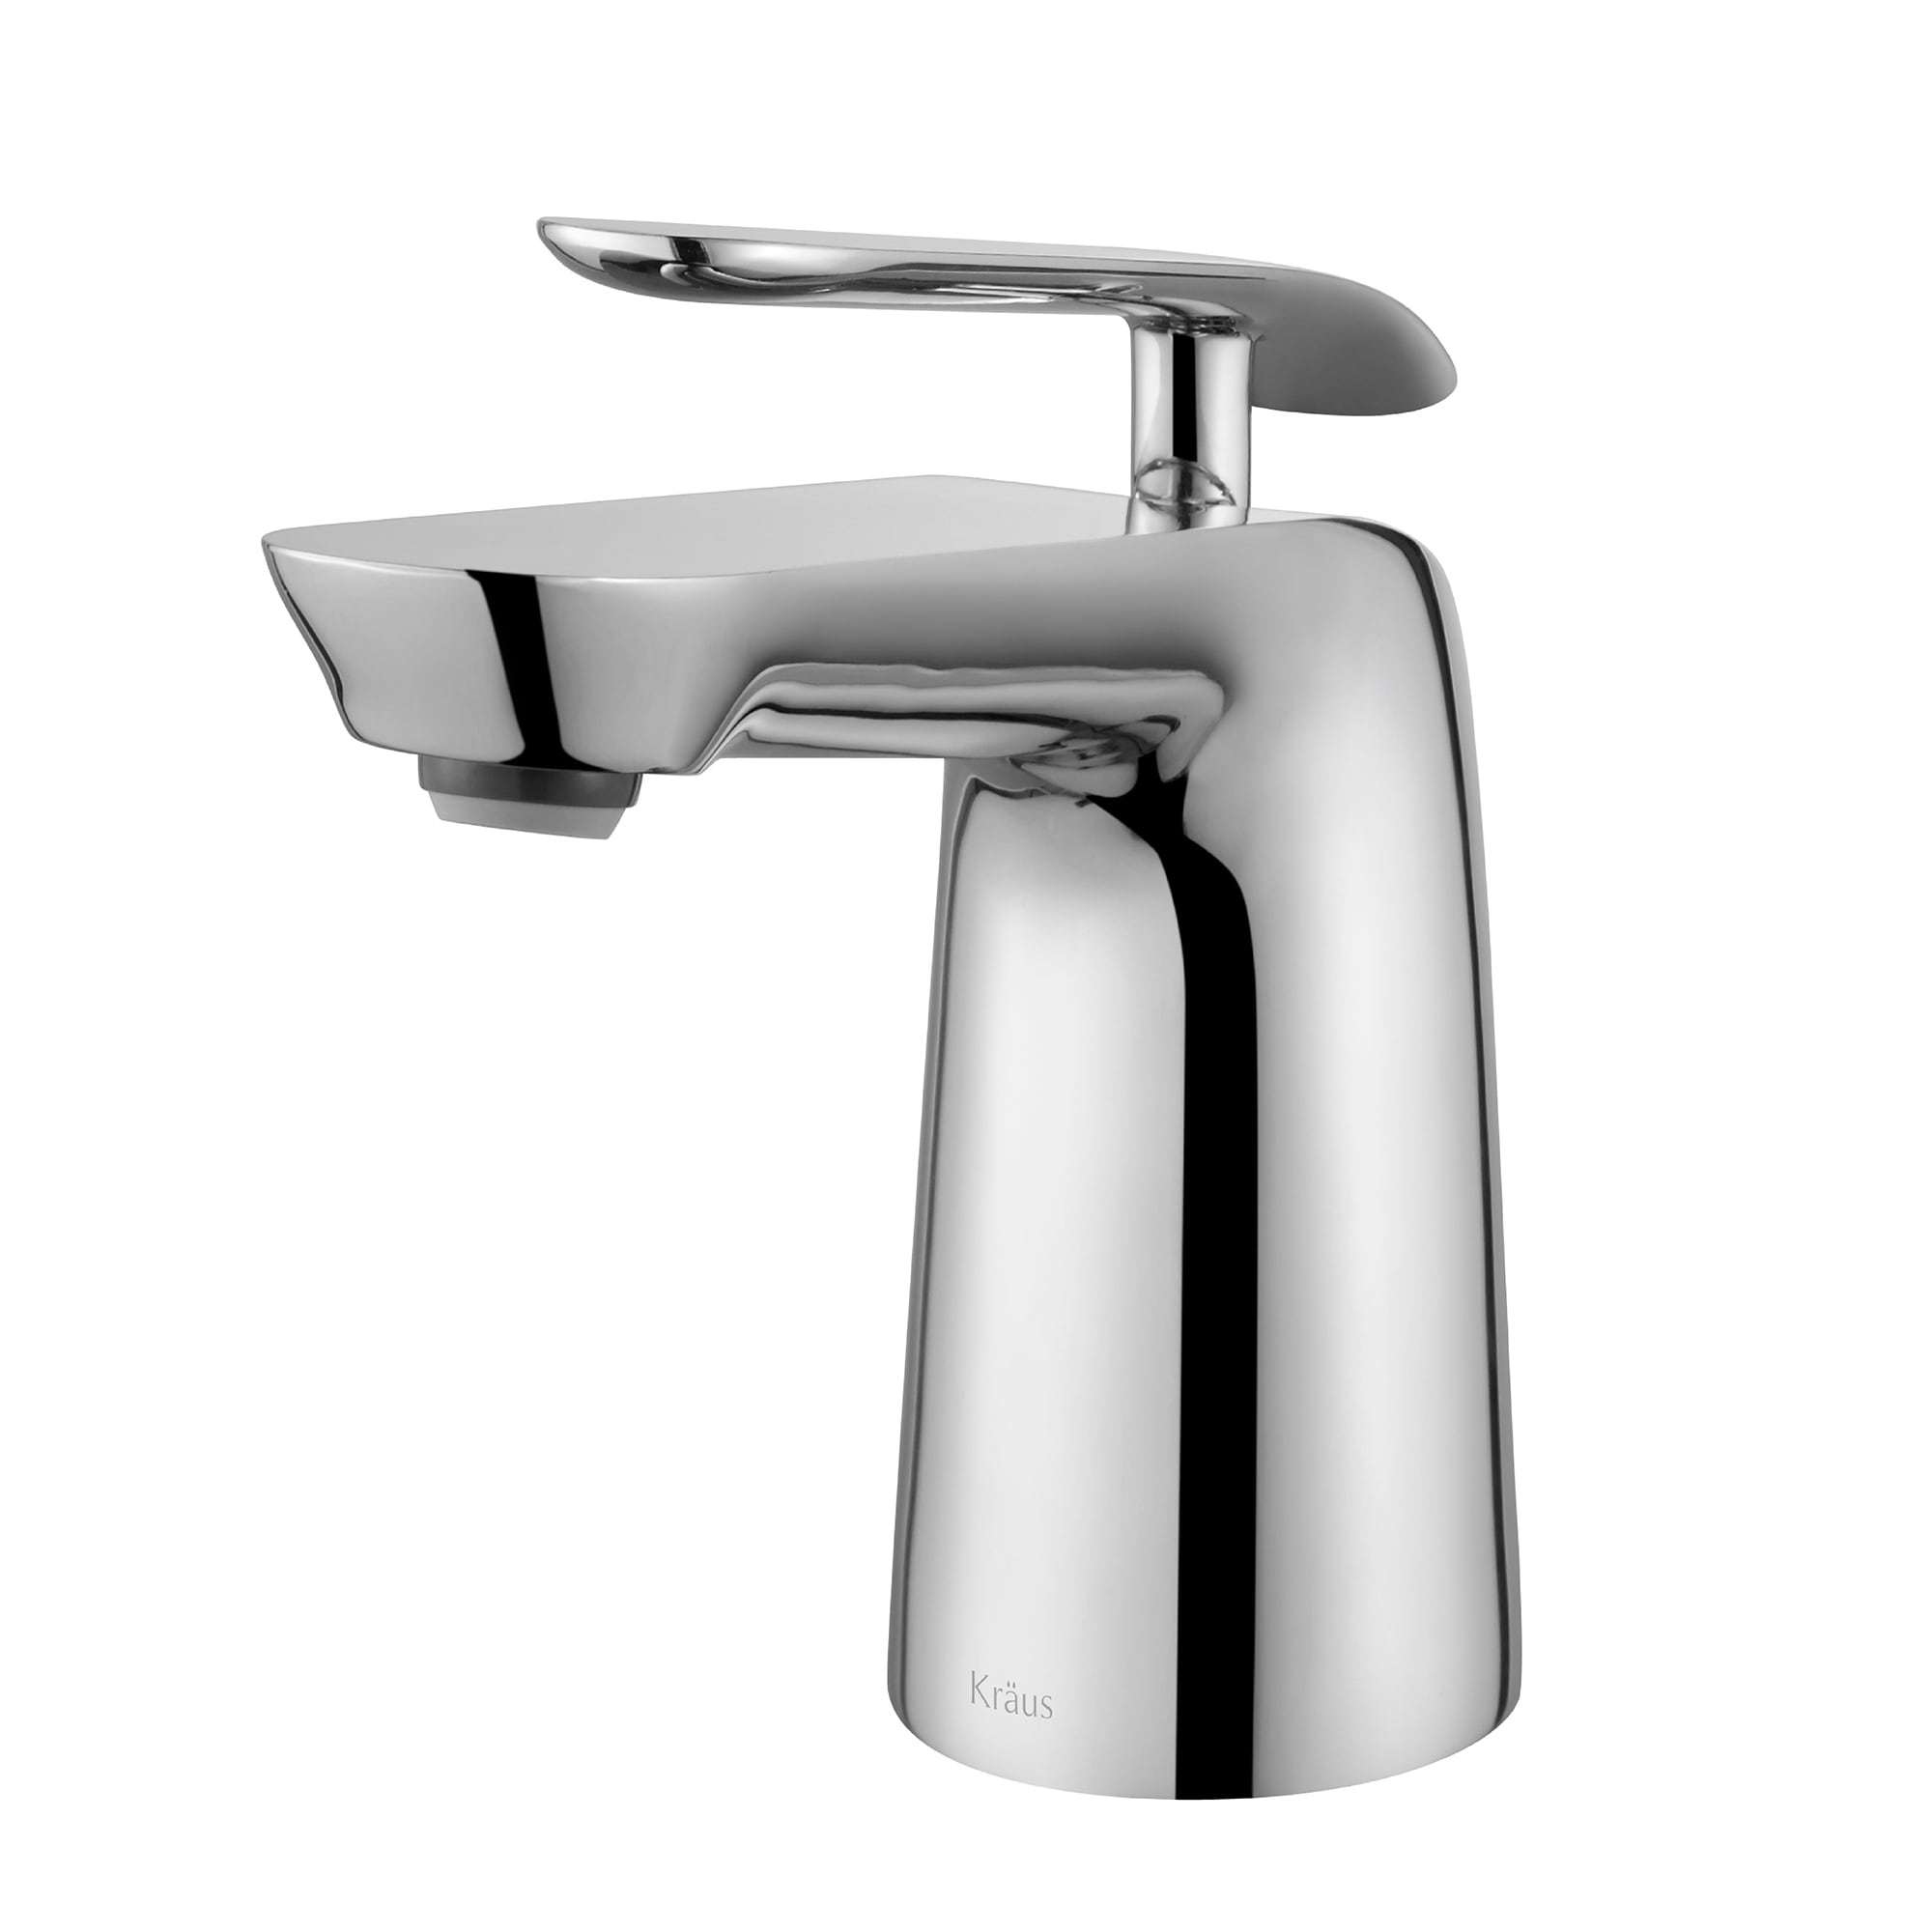 cirrus bathroom fontaine handle of fresh faucet kitchenzo faucets reviews kraus com widespread double unique